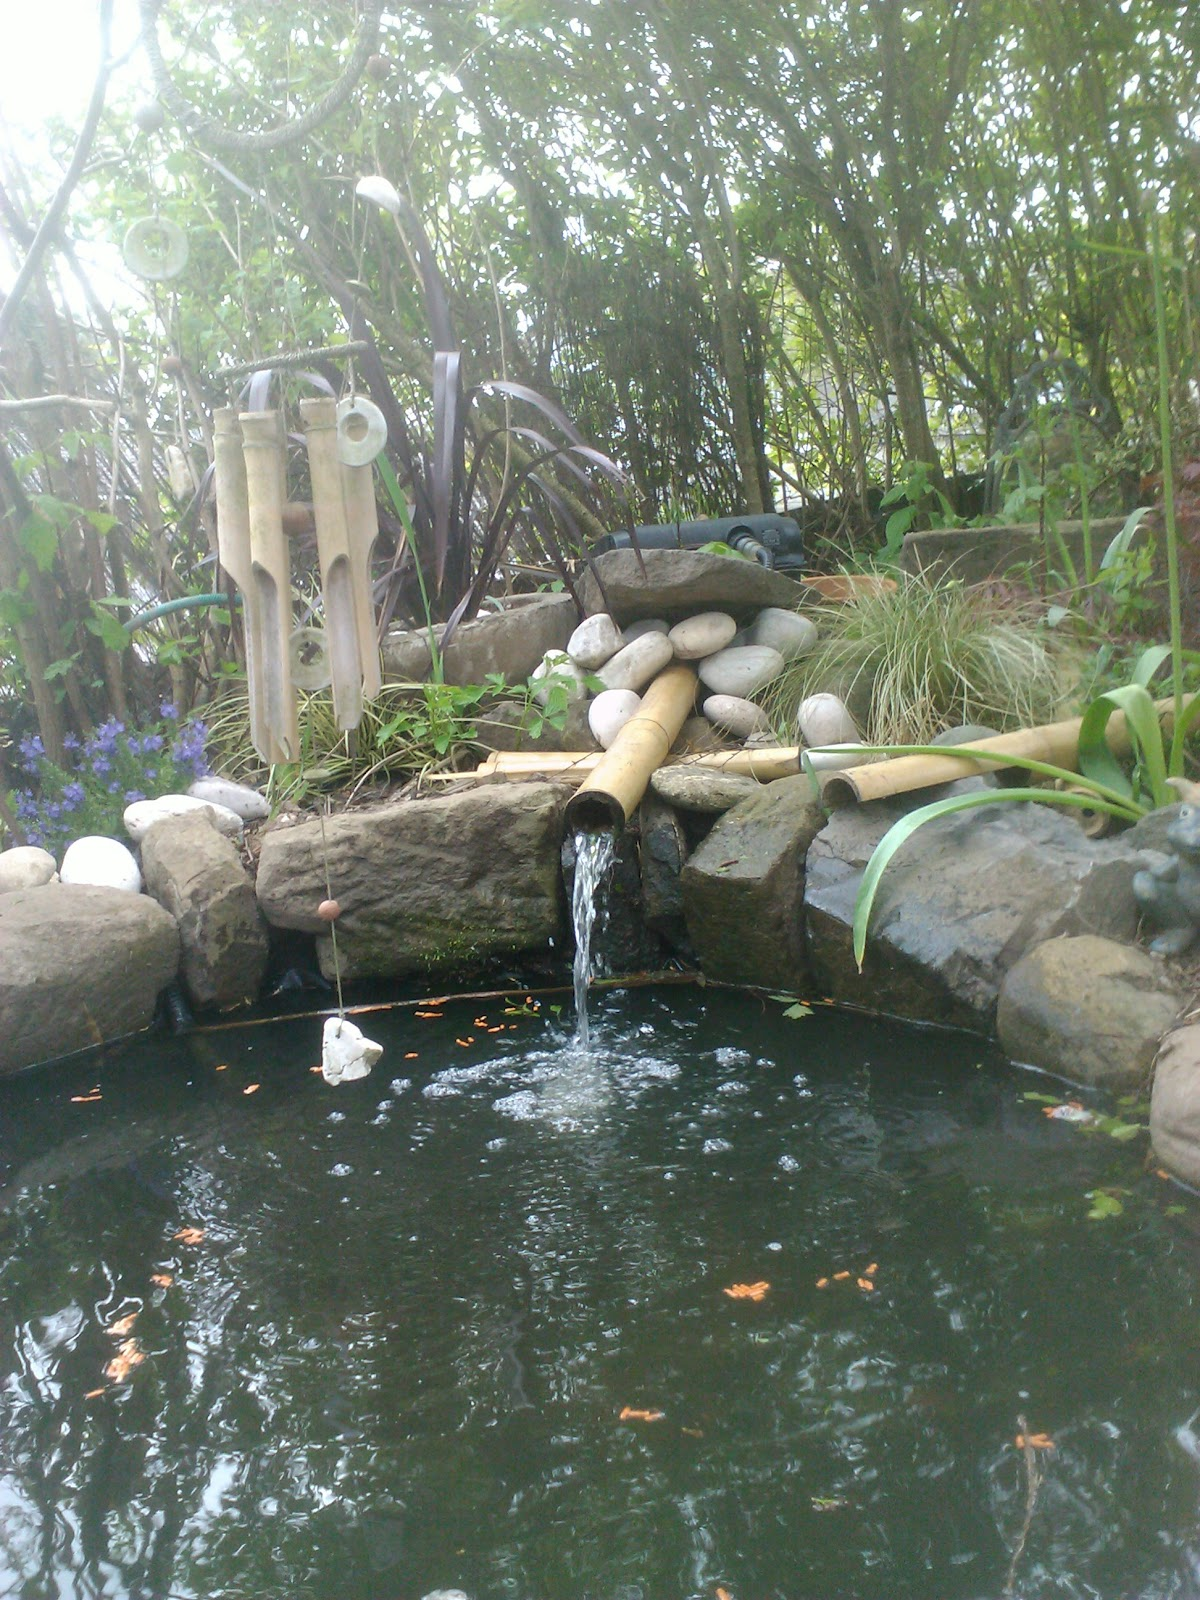 Heres More Edinburgh Landscaping From The Garden Construction Co Http://www. Garden Co.com/ , A Lovely Informal Pond With Bamboo Spout Running Through  Uv ...